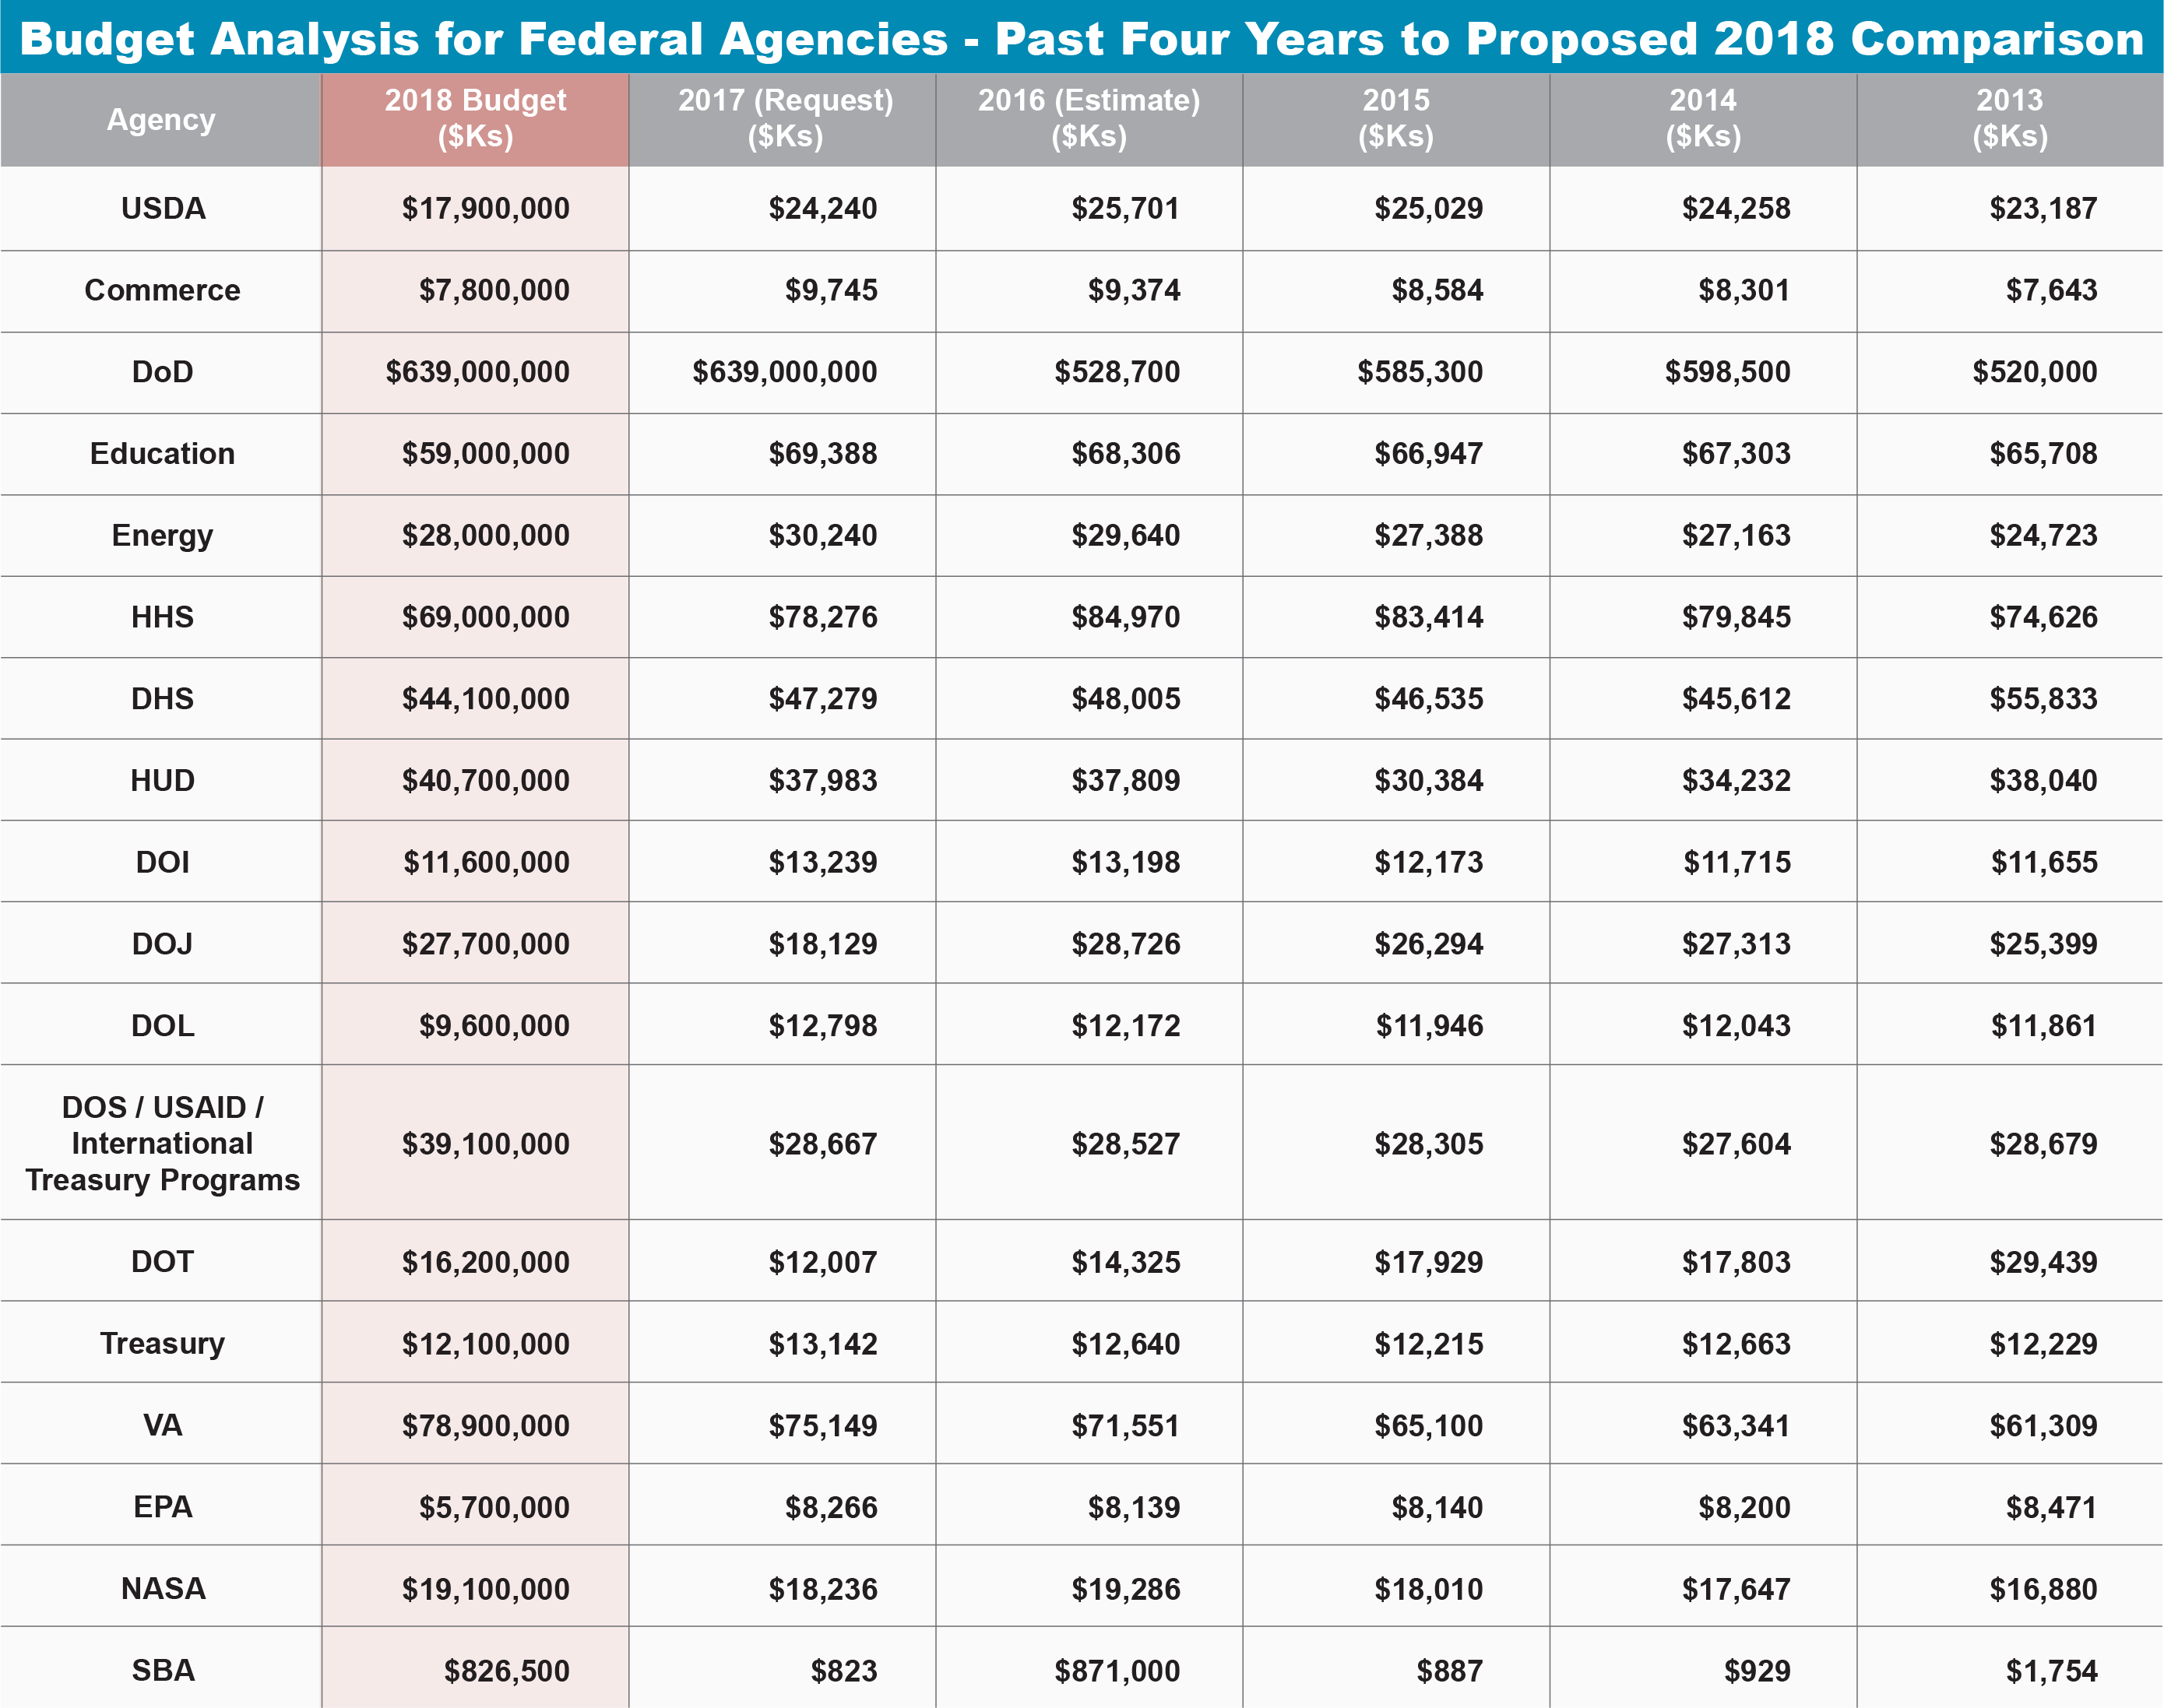 2018 Budget Analysis Table for Federal Agencies.png